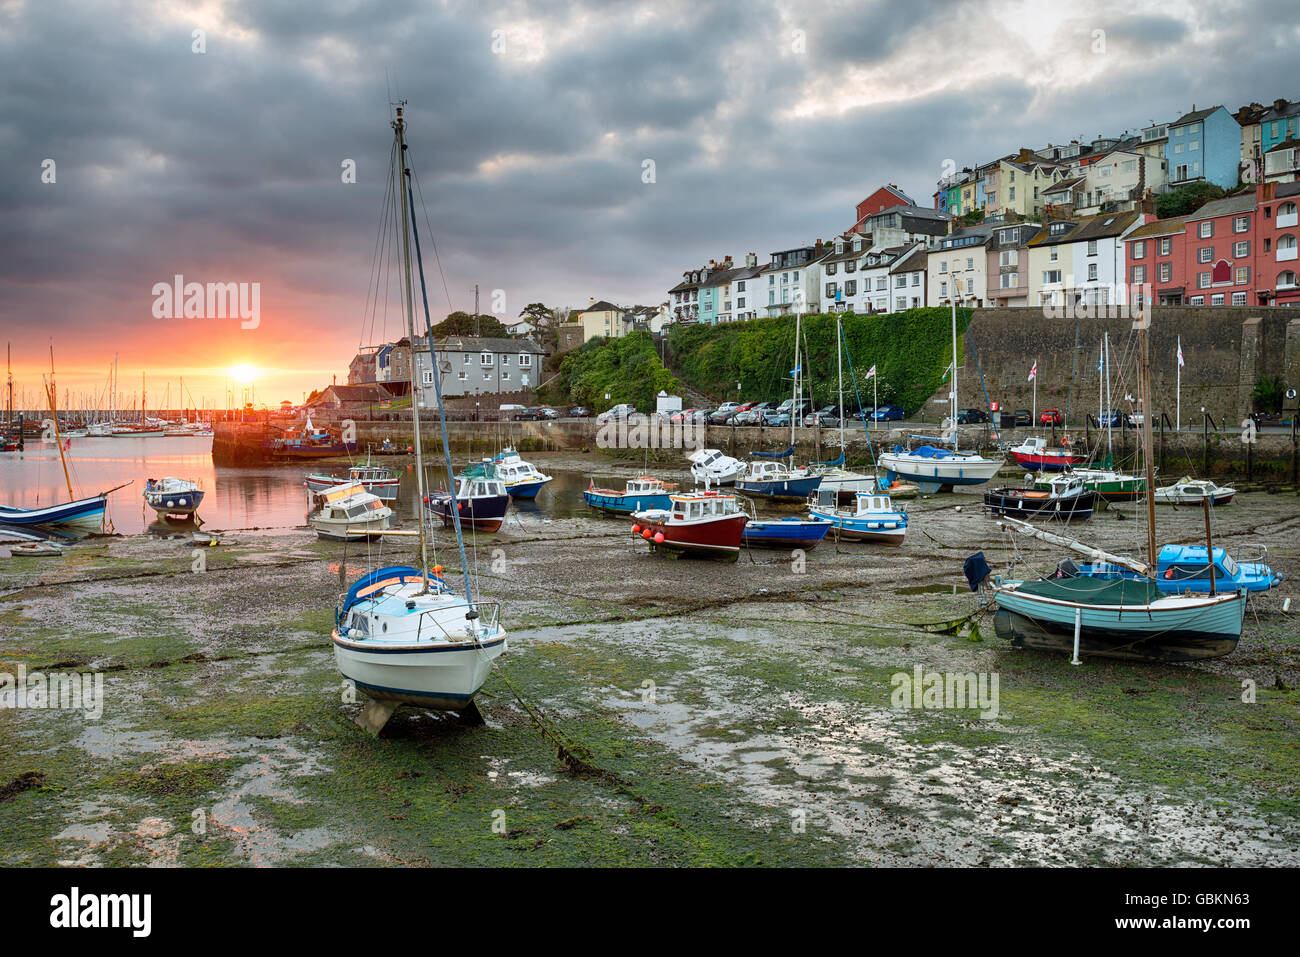 Sunrise over boats in the harbour at Brixham on the south coast of Devon - Stock Image